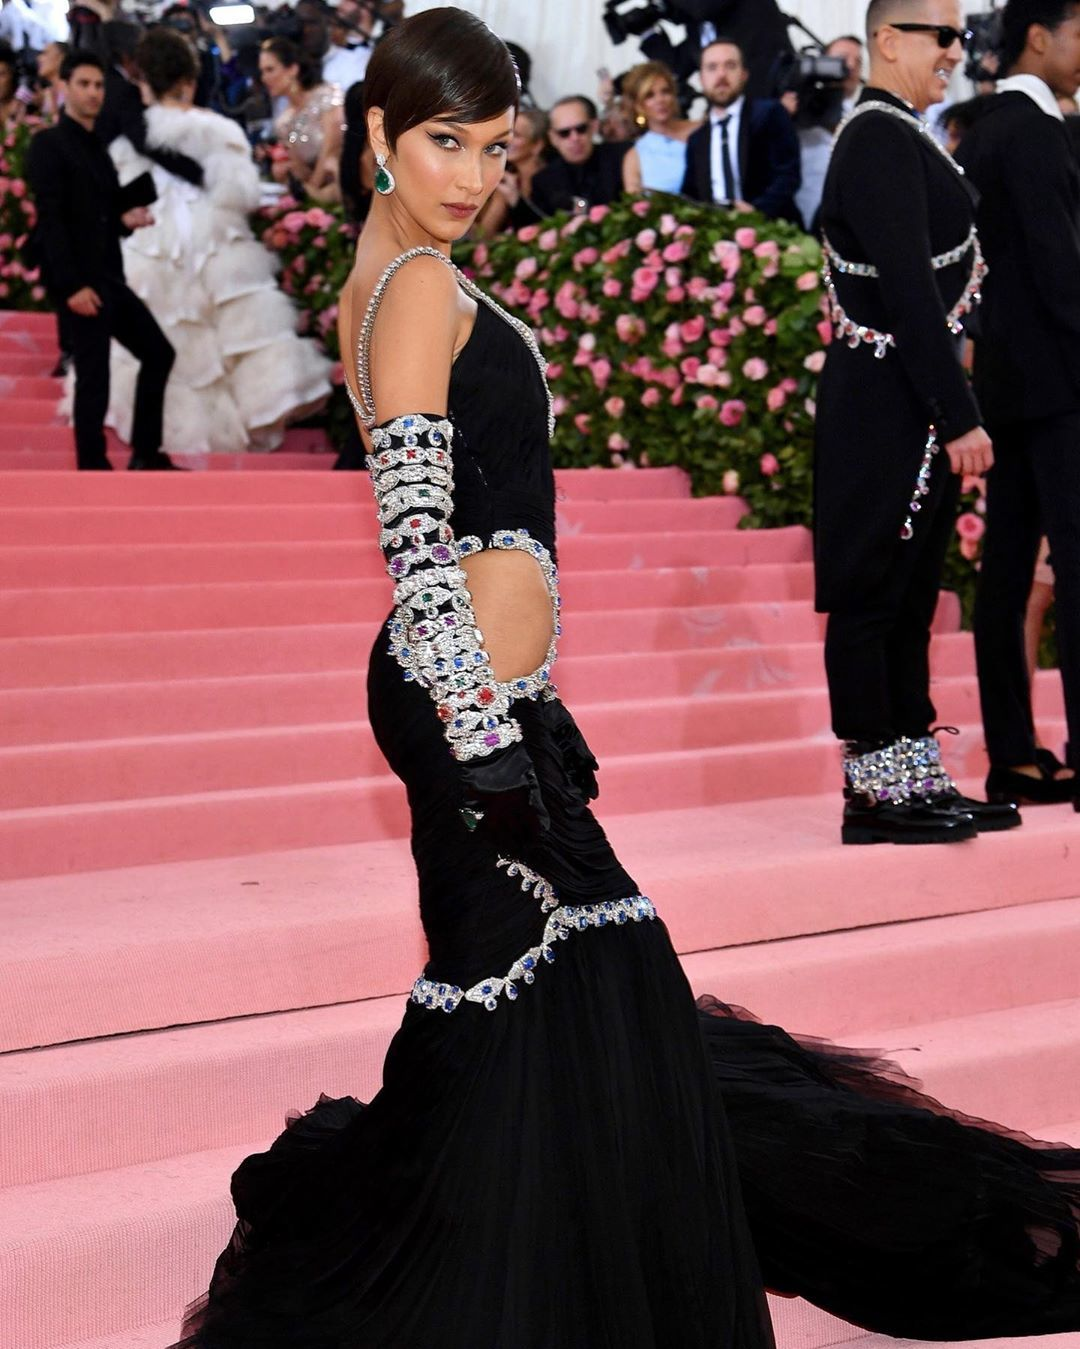 22 Gaya Unik Para Seleb di Met Gala 2019 'Camp: Notes on Fashion'